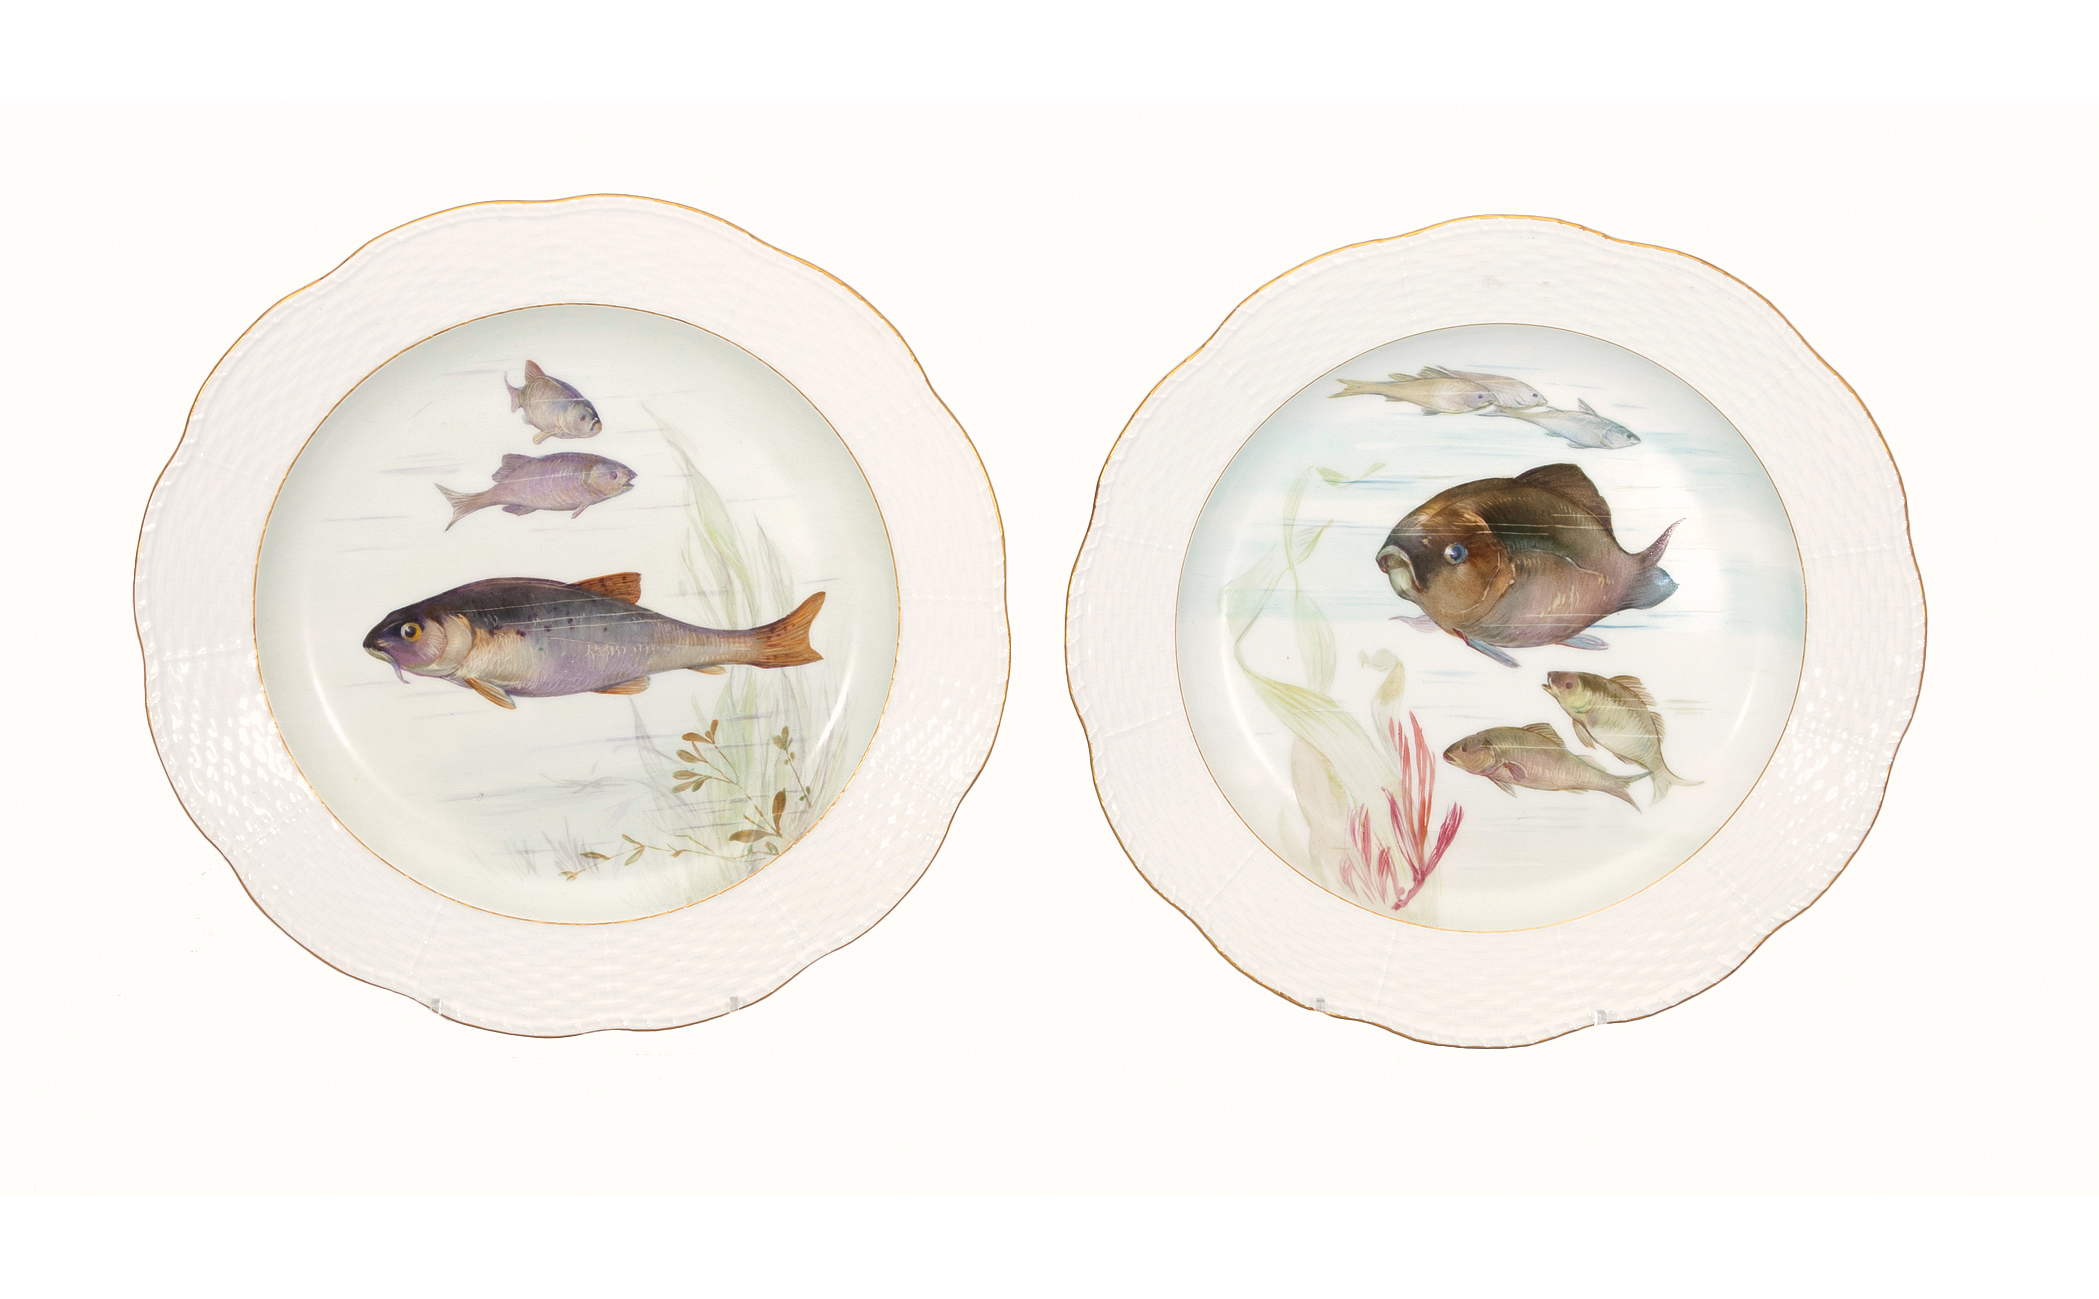 A pair of plates with fishes